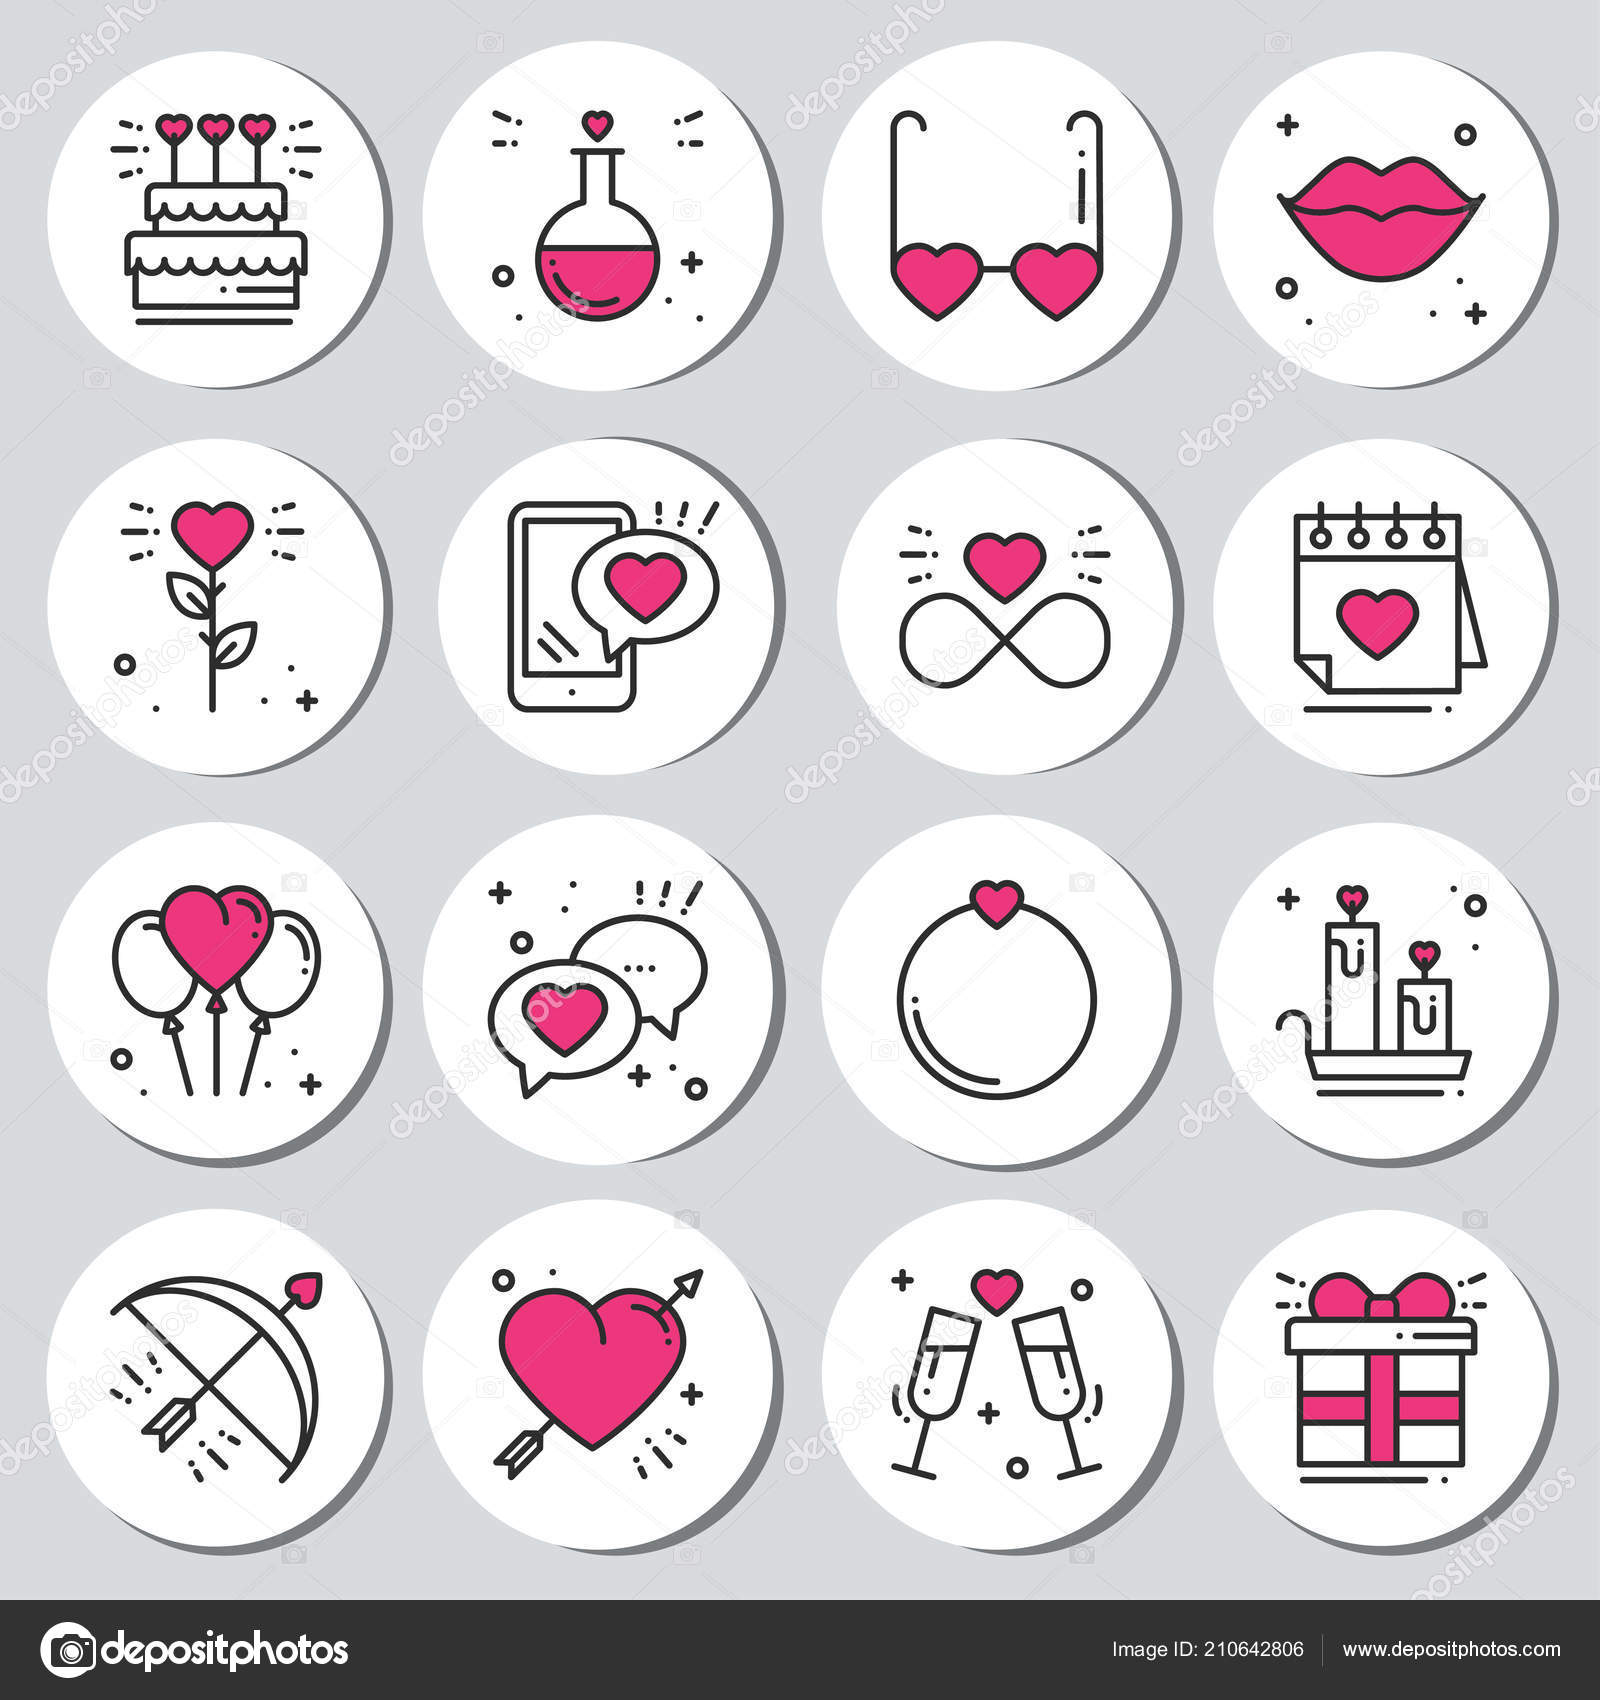 graphic relating to Printable Stickers Labels identified as St Valentines working day spherical printable stickers fastened. Intimate